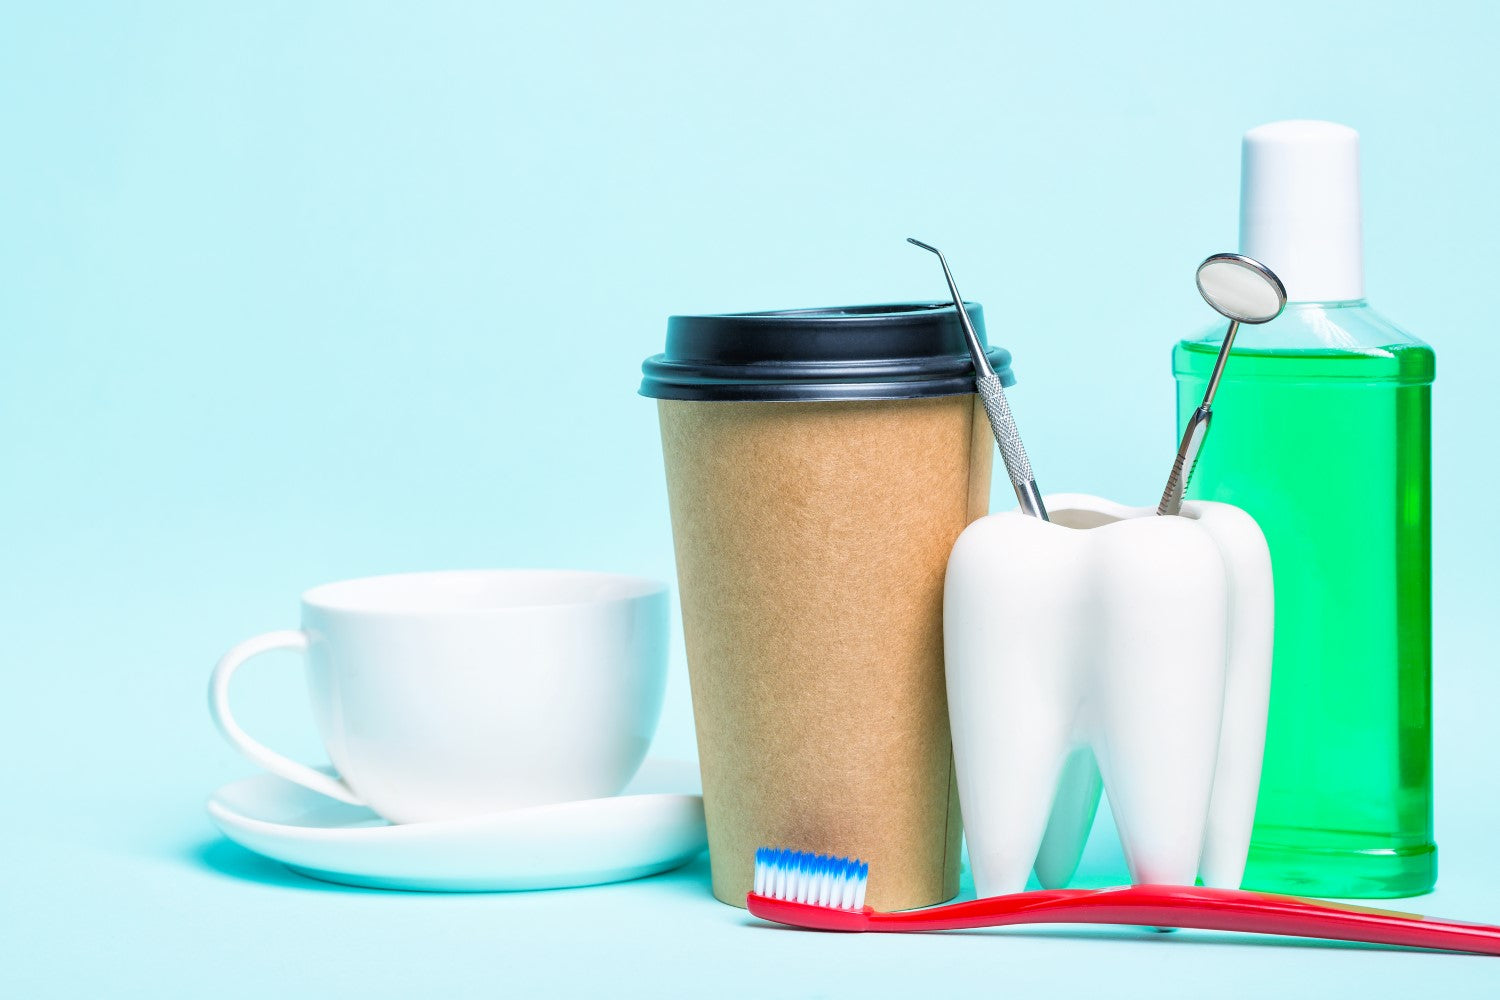 cup, coffee, tooth, toothbrush and other oral hygiene